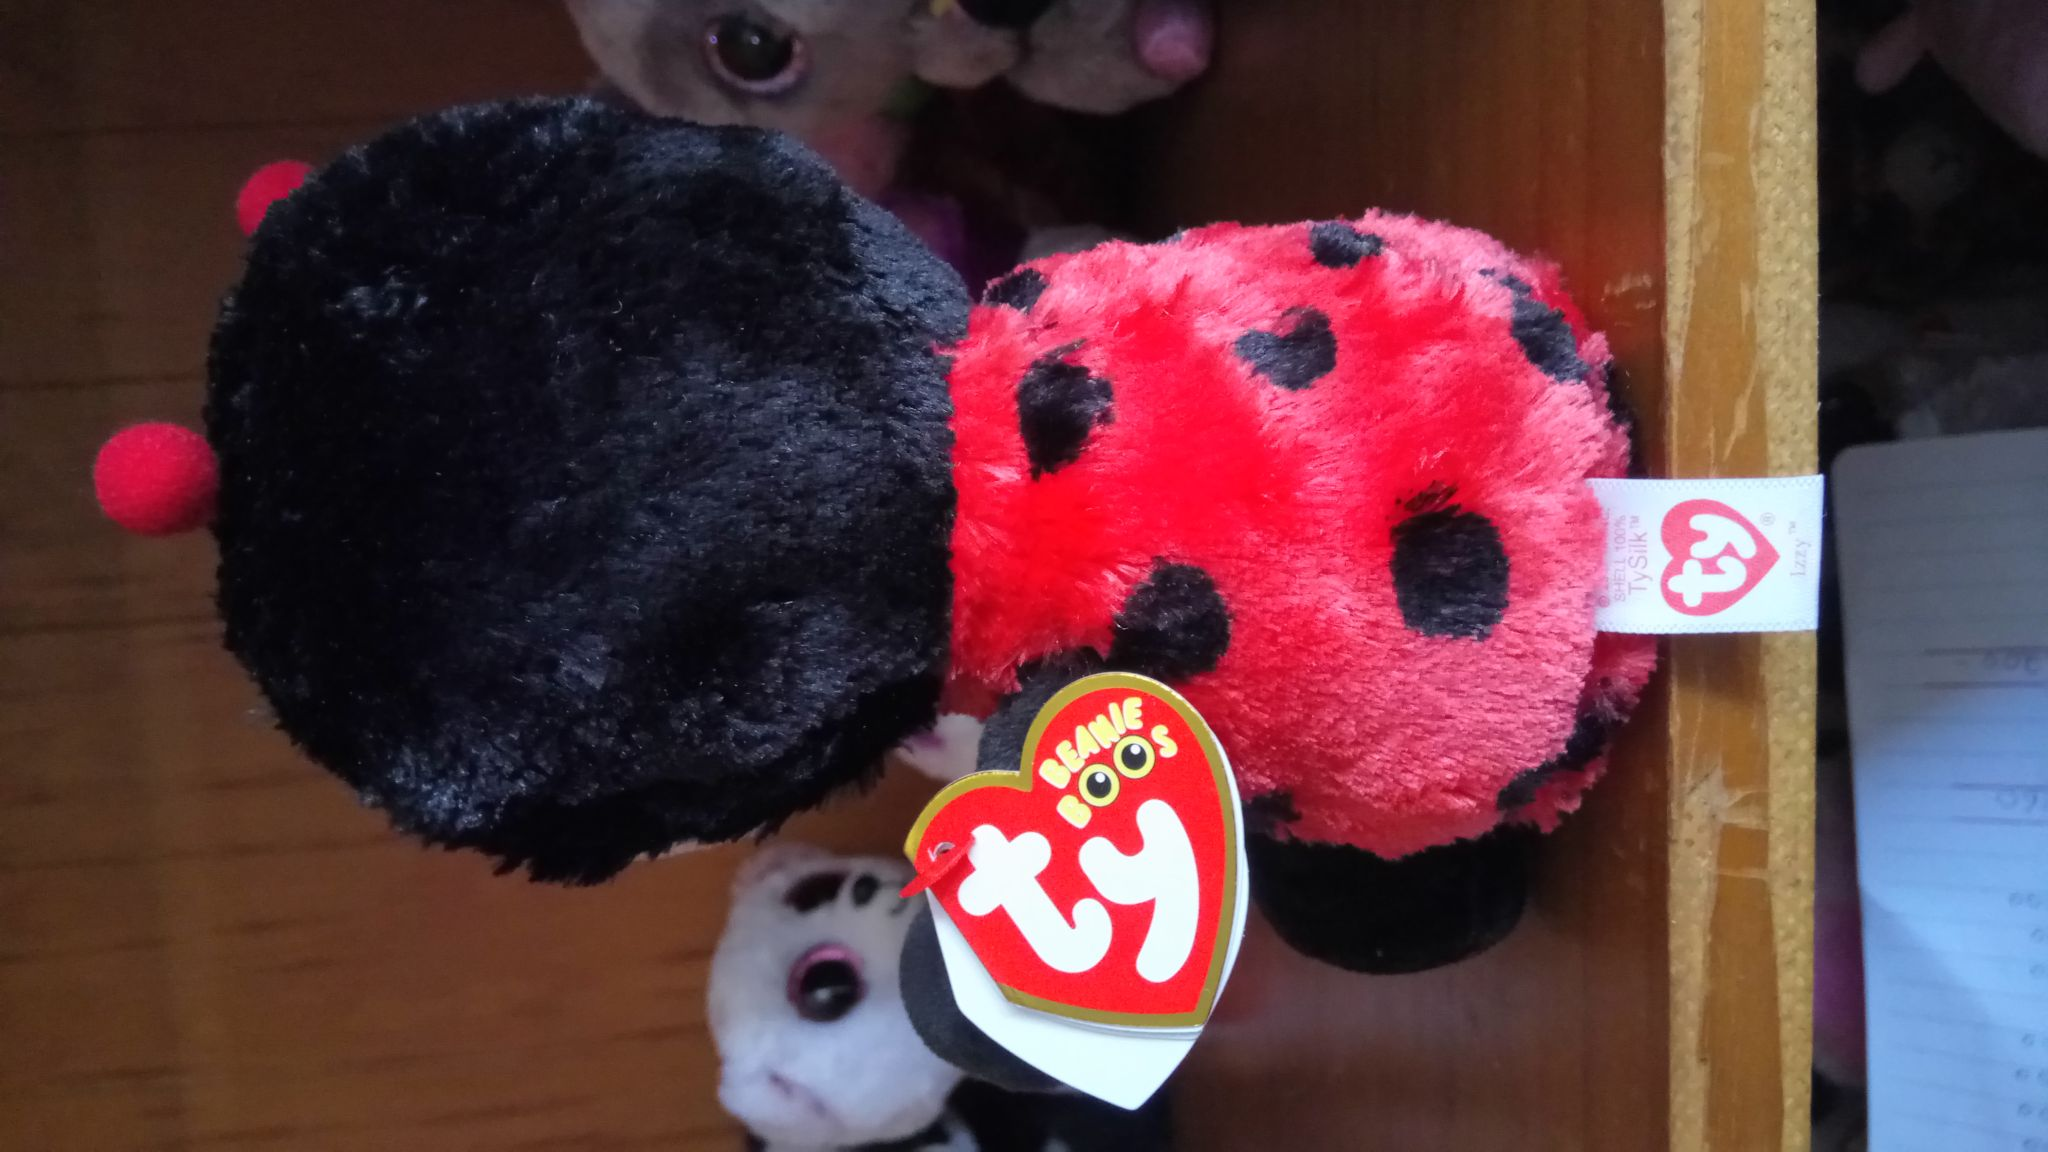 Izzy The Lady Bug Beanie Baby - Red back image (back cover, second image)